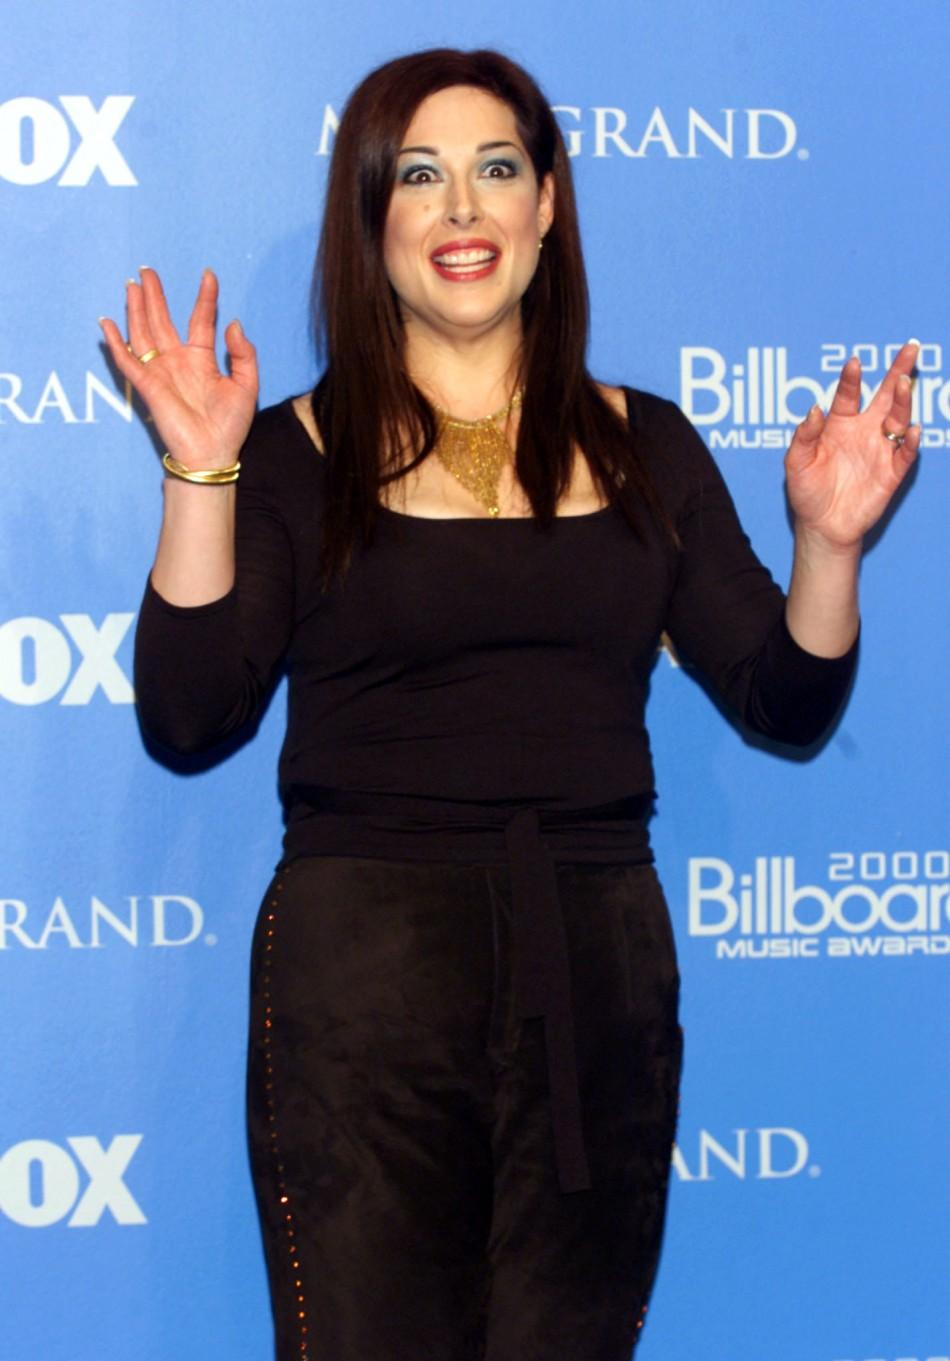 carnie wilson weightcarnie wilson book, carnie wilson desserts, carnie wilson, carnie wilson playboy, carnie wilson wiki, carnie wilson 2015, carnie wilson net worth, carnie wilson weight, carnie wilson husband, carnie wilson now, carnie wilson playboy photos, carnie wilson progressive commercial, carnie wilson songs, carnie wilson weight loss, carnie wilson before and after, carnie wilson husband rob bonfiglio, carnie wilson weight 2015, carnie wilson playboy pics, carnie wilson weight 2014, carnie wilson hold on